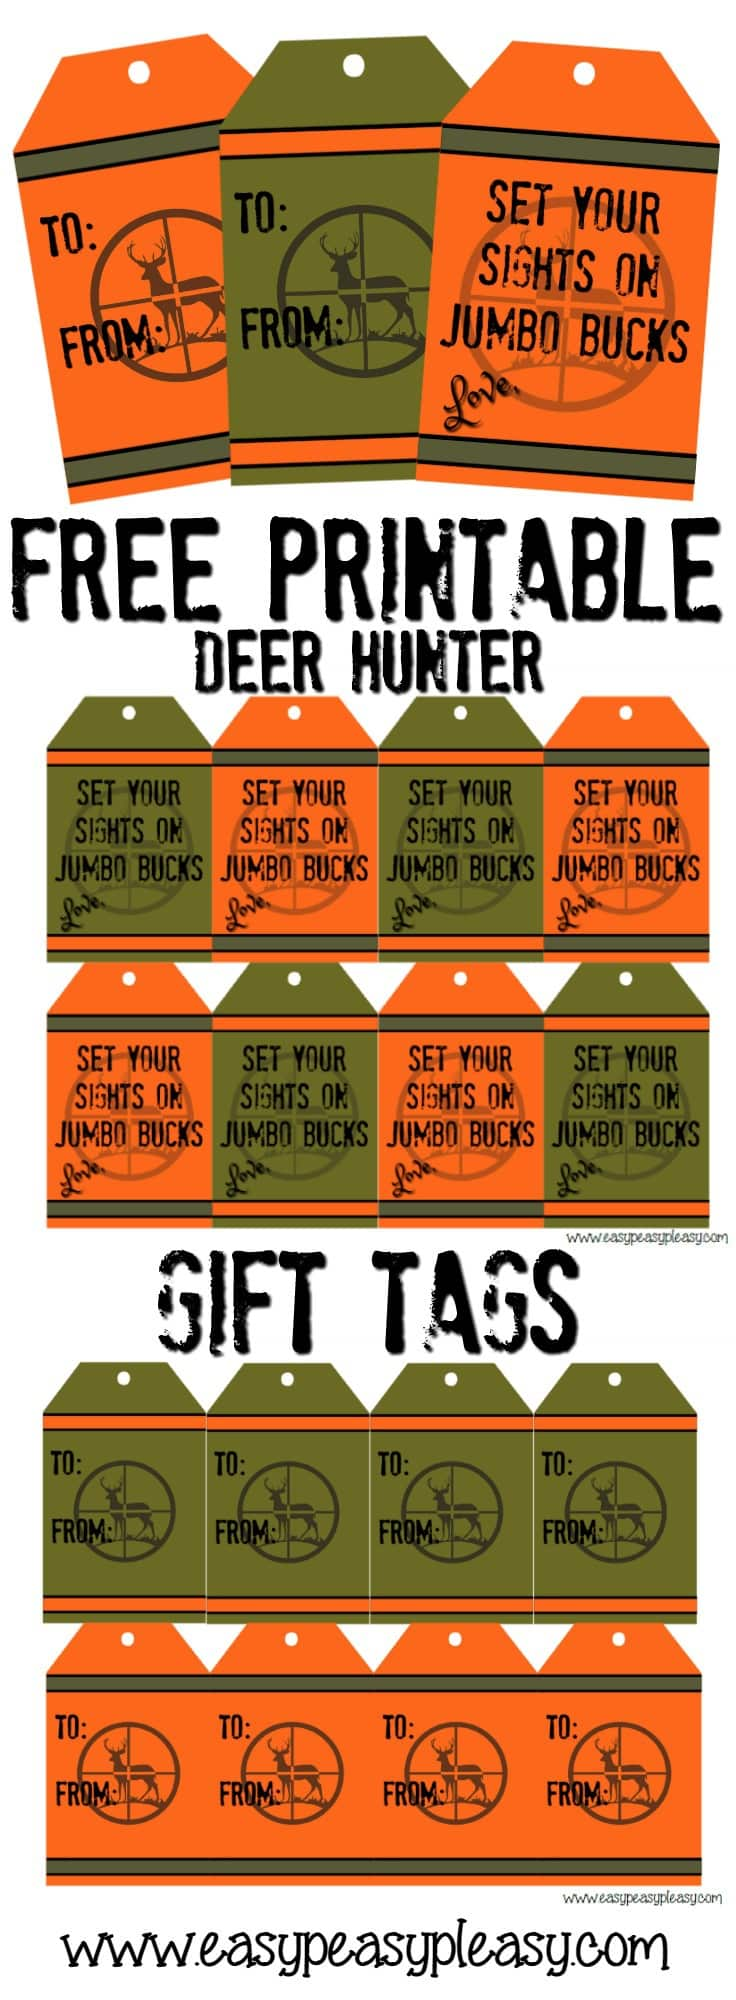 Free printable Deer Hunter Gift Tags. 4 to choose from.